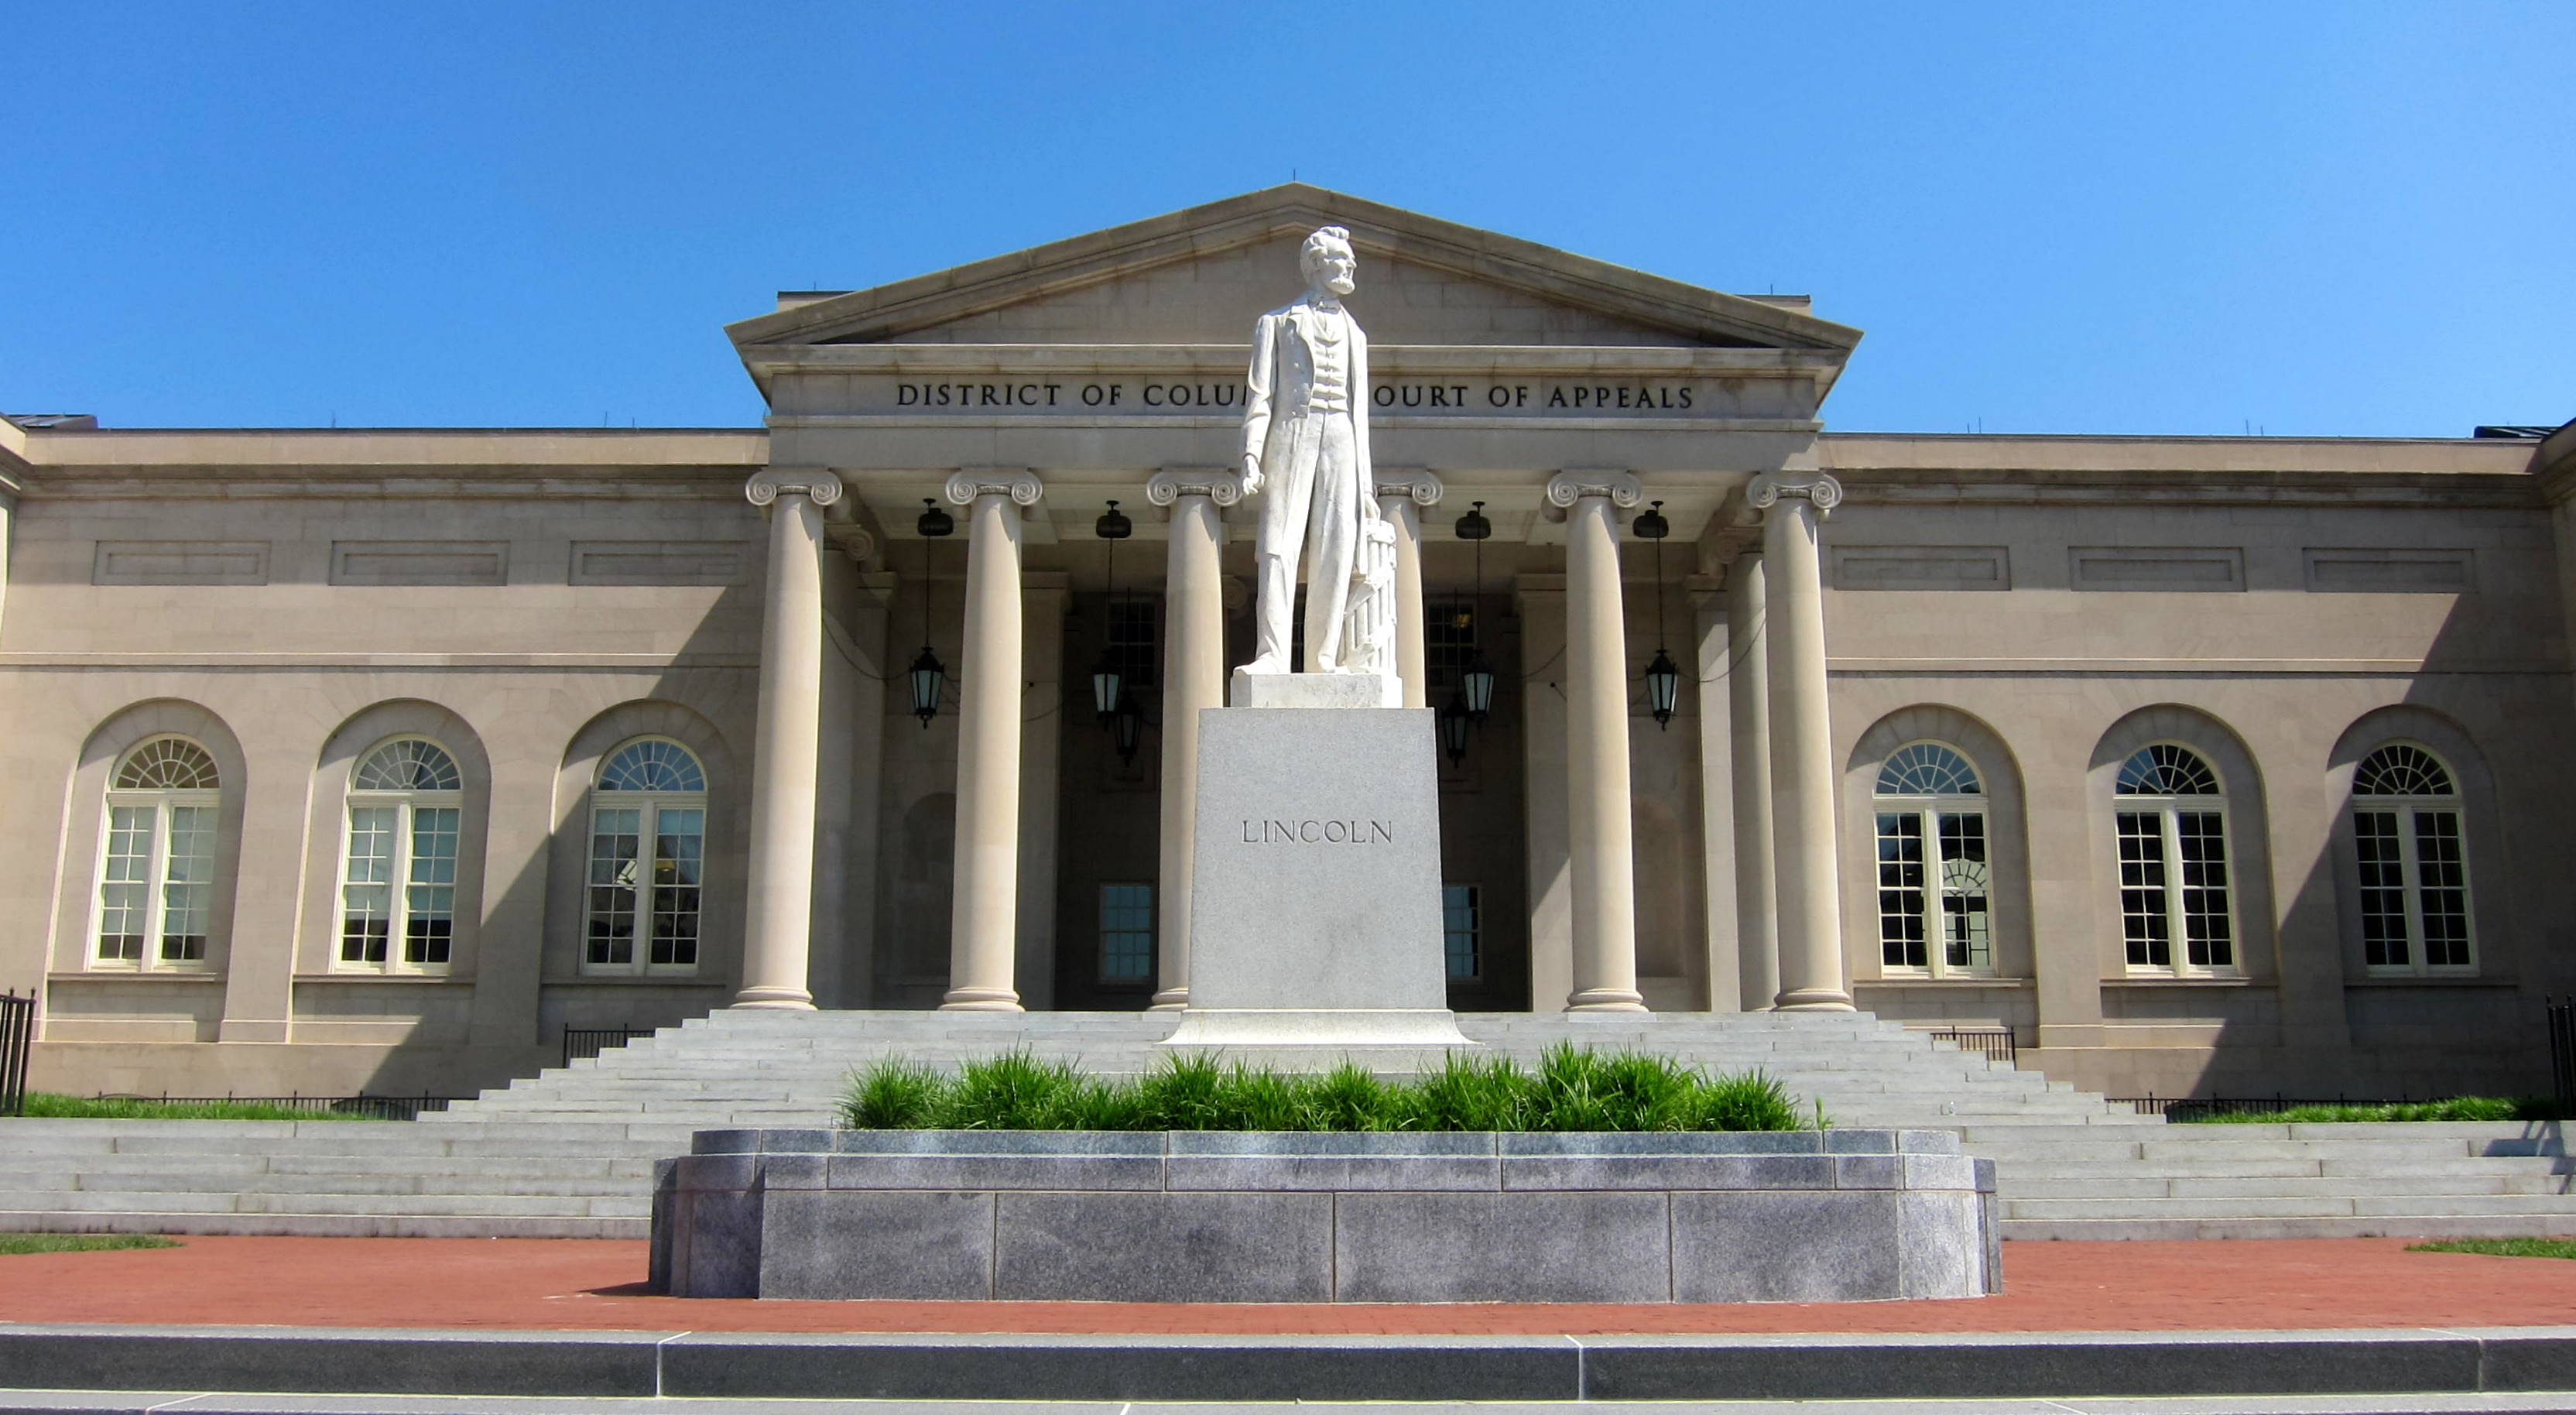 The District of Columbia Court of Appeals is now located in what was originally built to be the District of Columbia City Hall. The statue of Lincoln was dedicated in 1868.